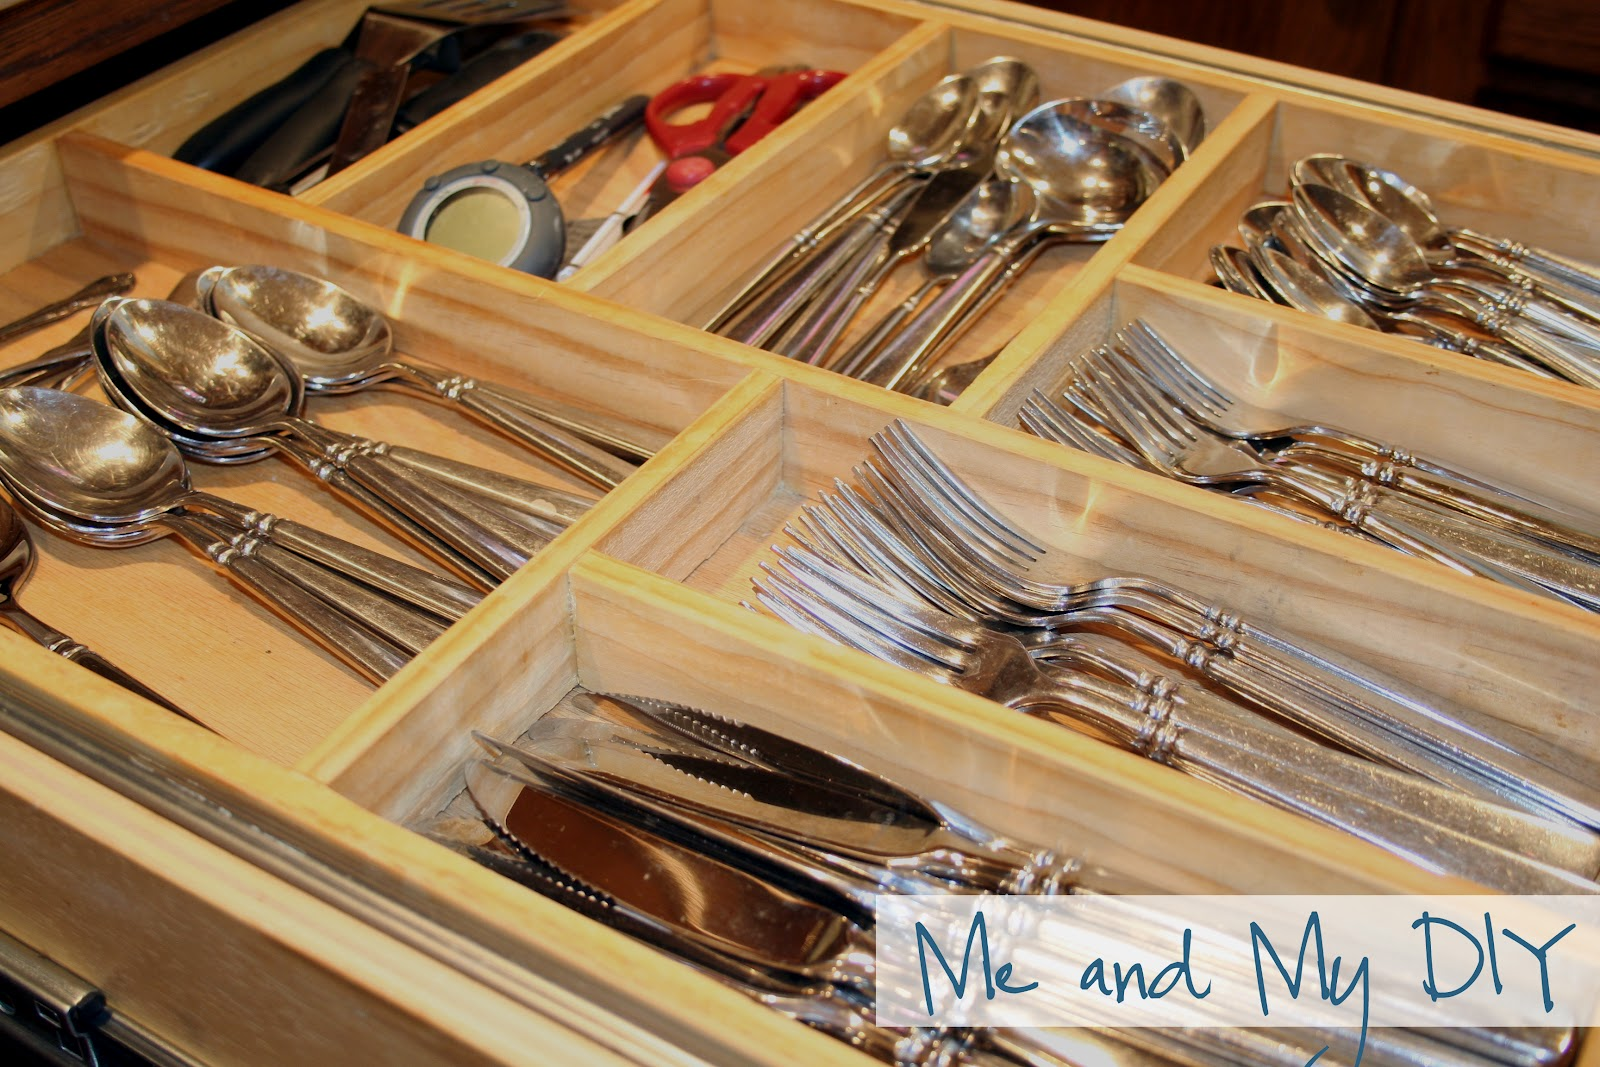 Kitchen drawer inserts for spices - When We Built Our Home Twelve Years Ago Wood Tiered Drawer Dividers Weren T Exactly In The Budget